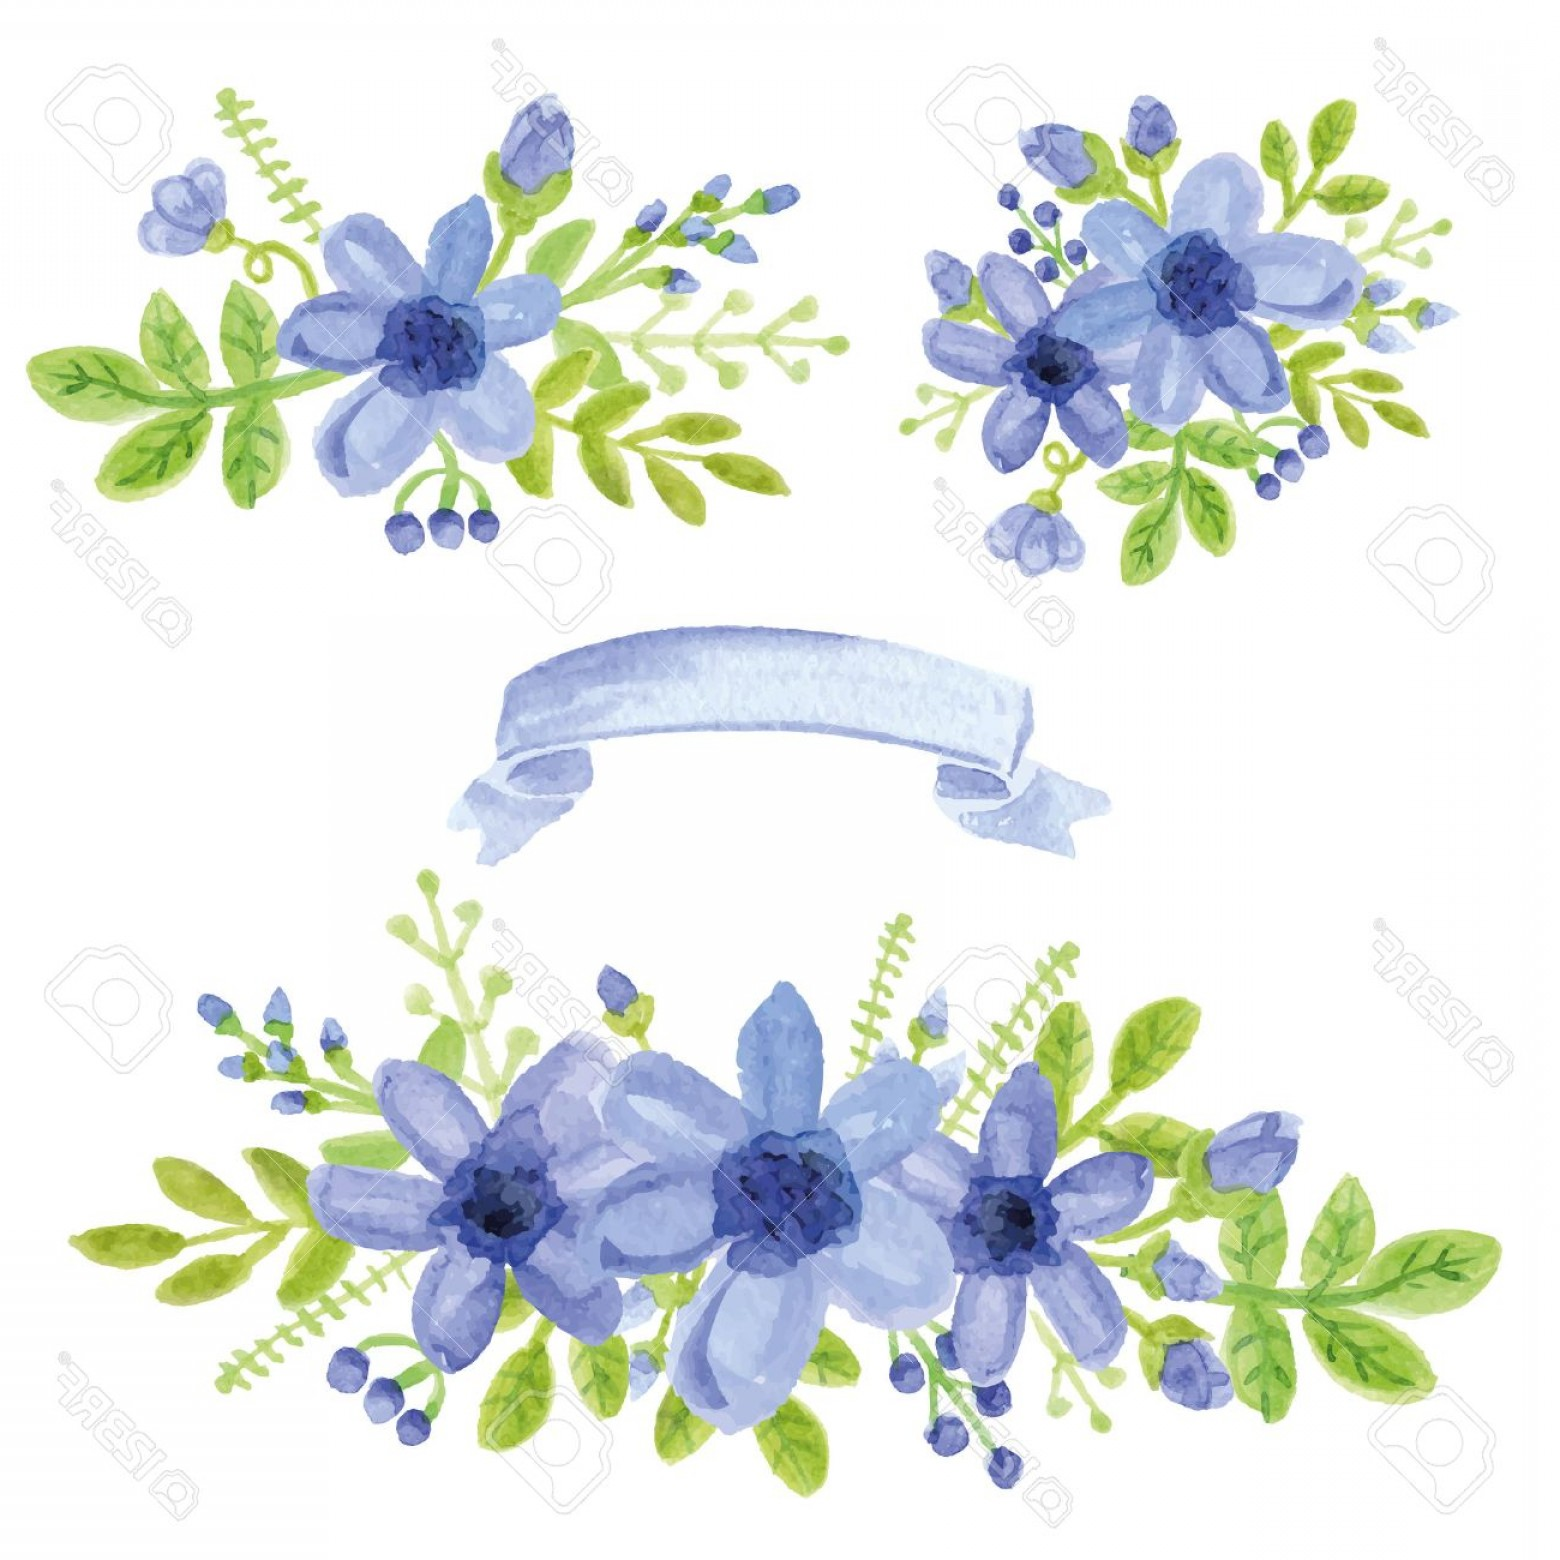 Blue Daisy Flower Vector: Photostock Vector Watercolor Blue Daisy Flowers Green Branches Leaves In Bouquet Set Hand Painted Berries Floral Ribbo